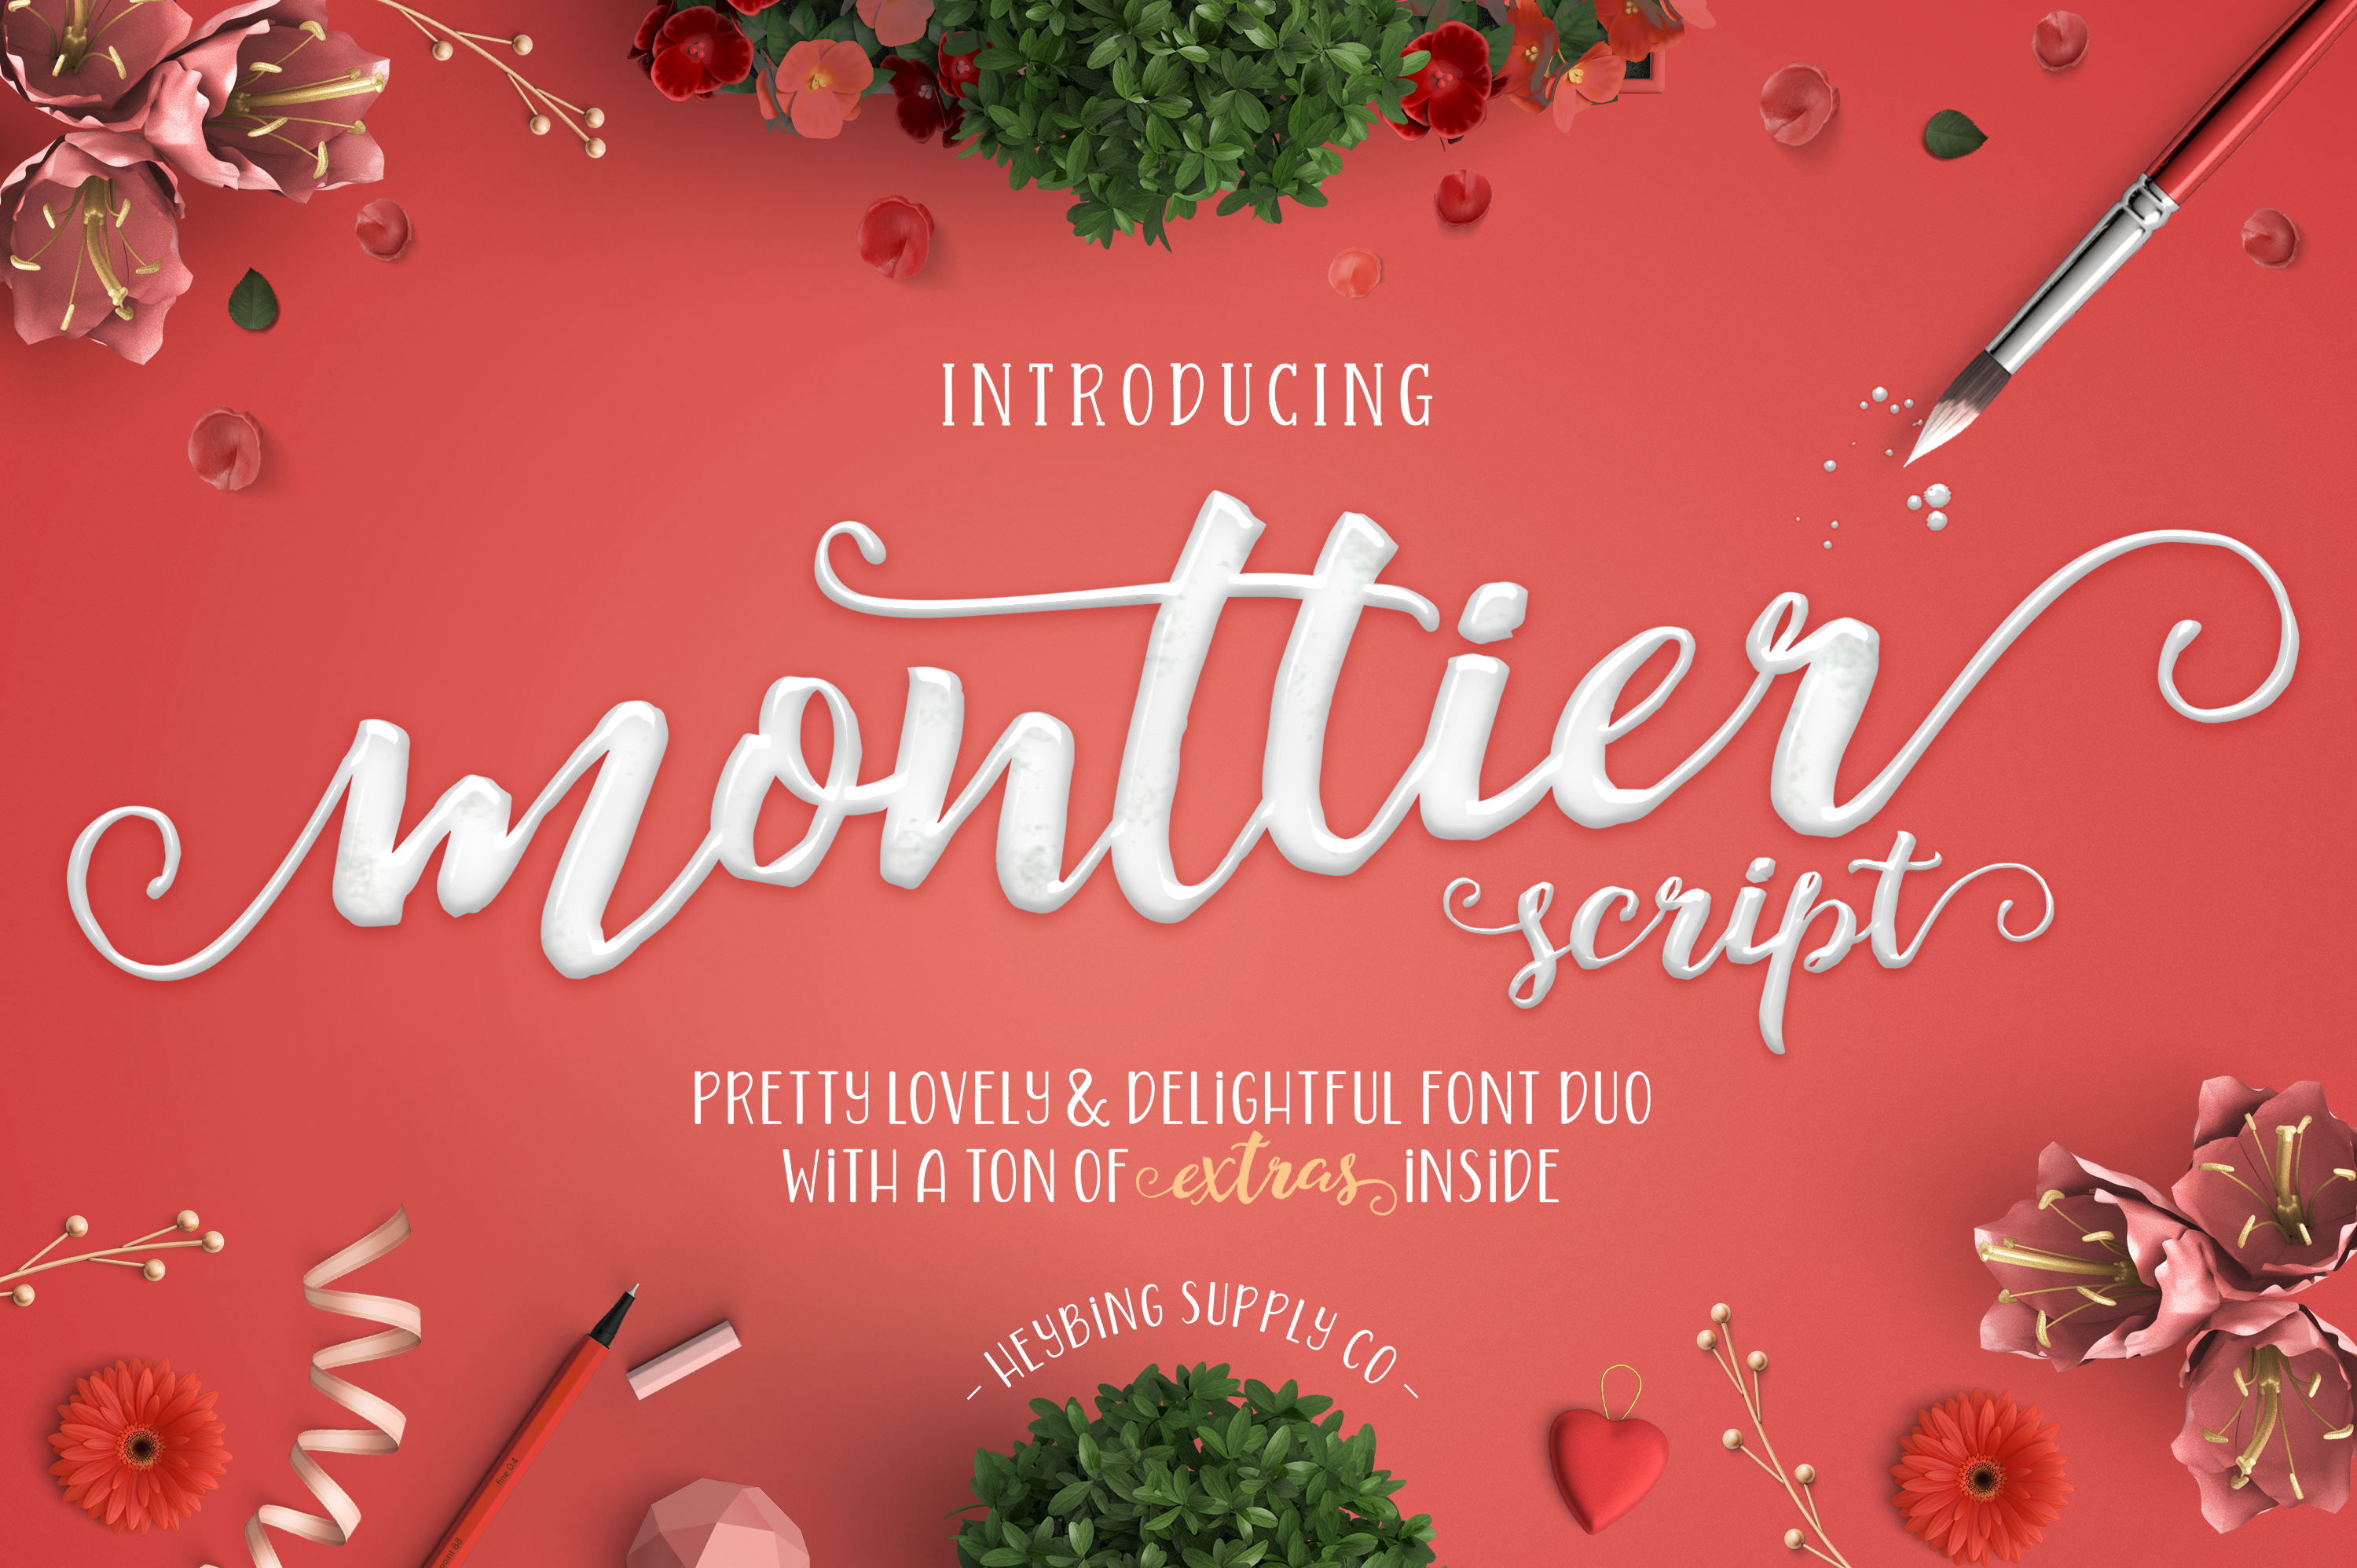 Monttier Font By Heybing Supply Co.